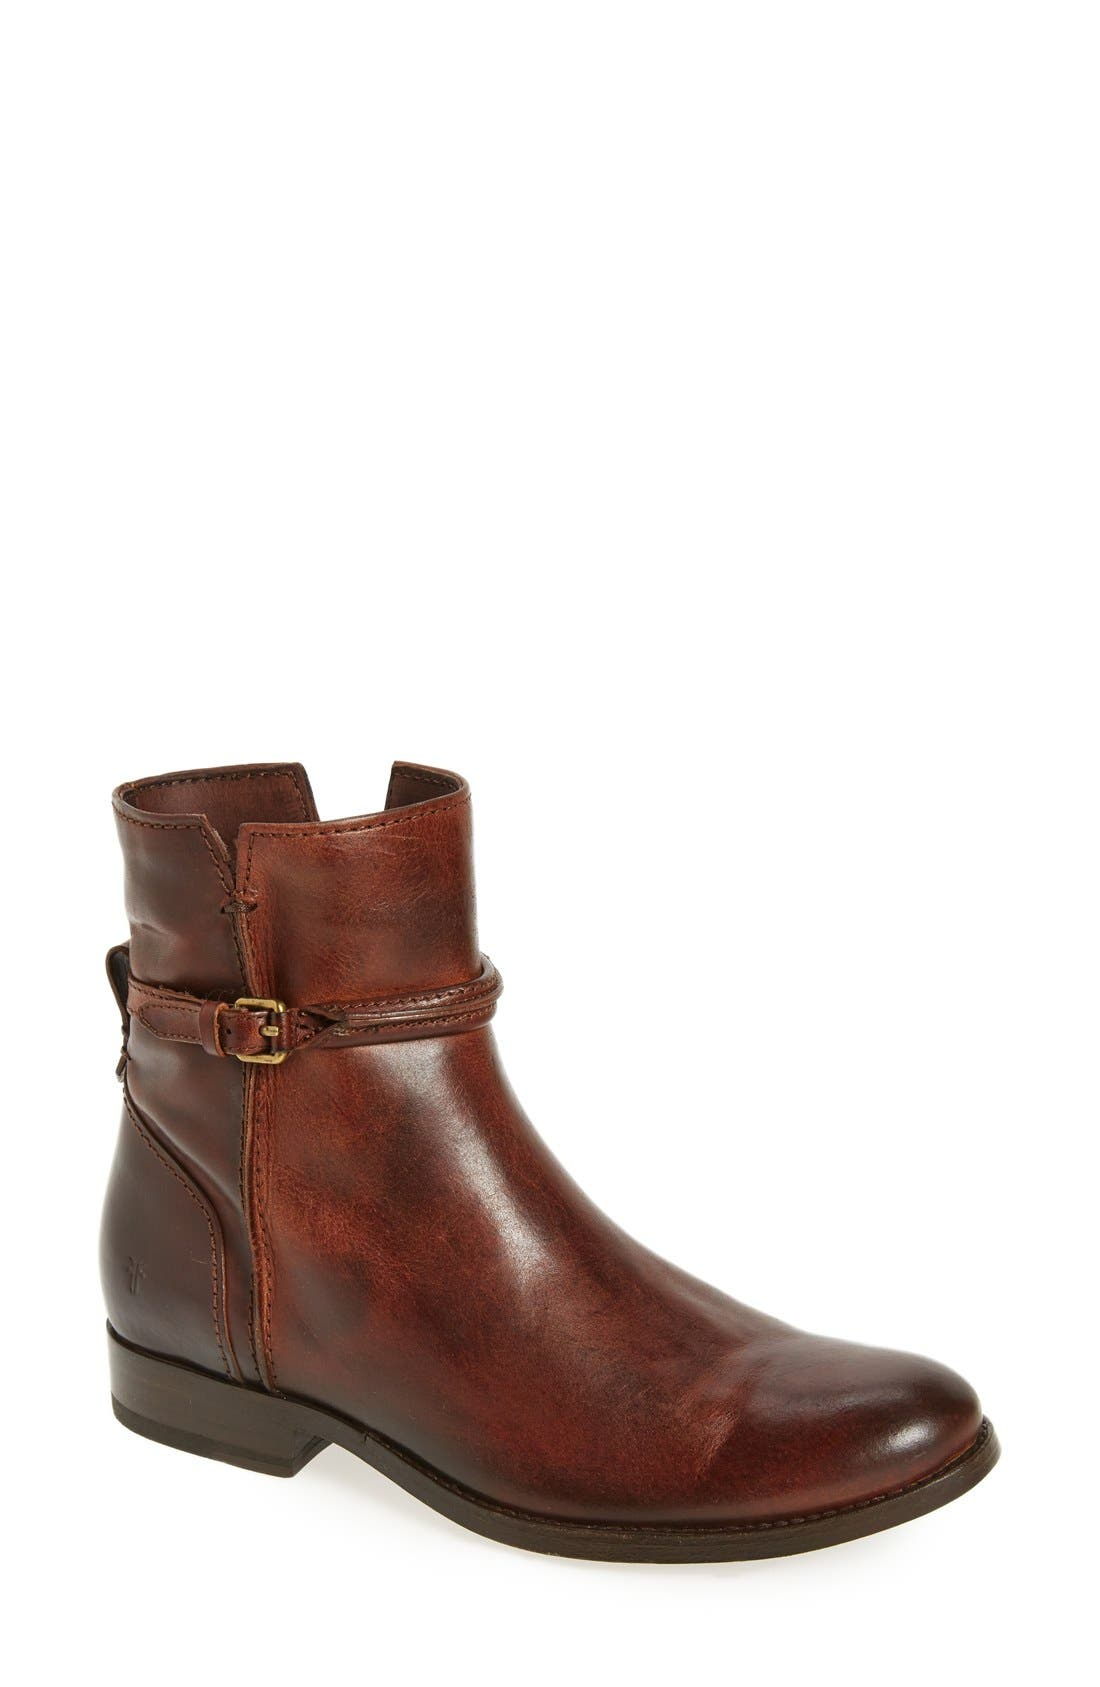 Melissa Bootie,                         Main,                         color, Brown Leather